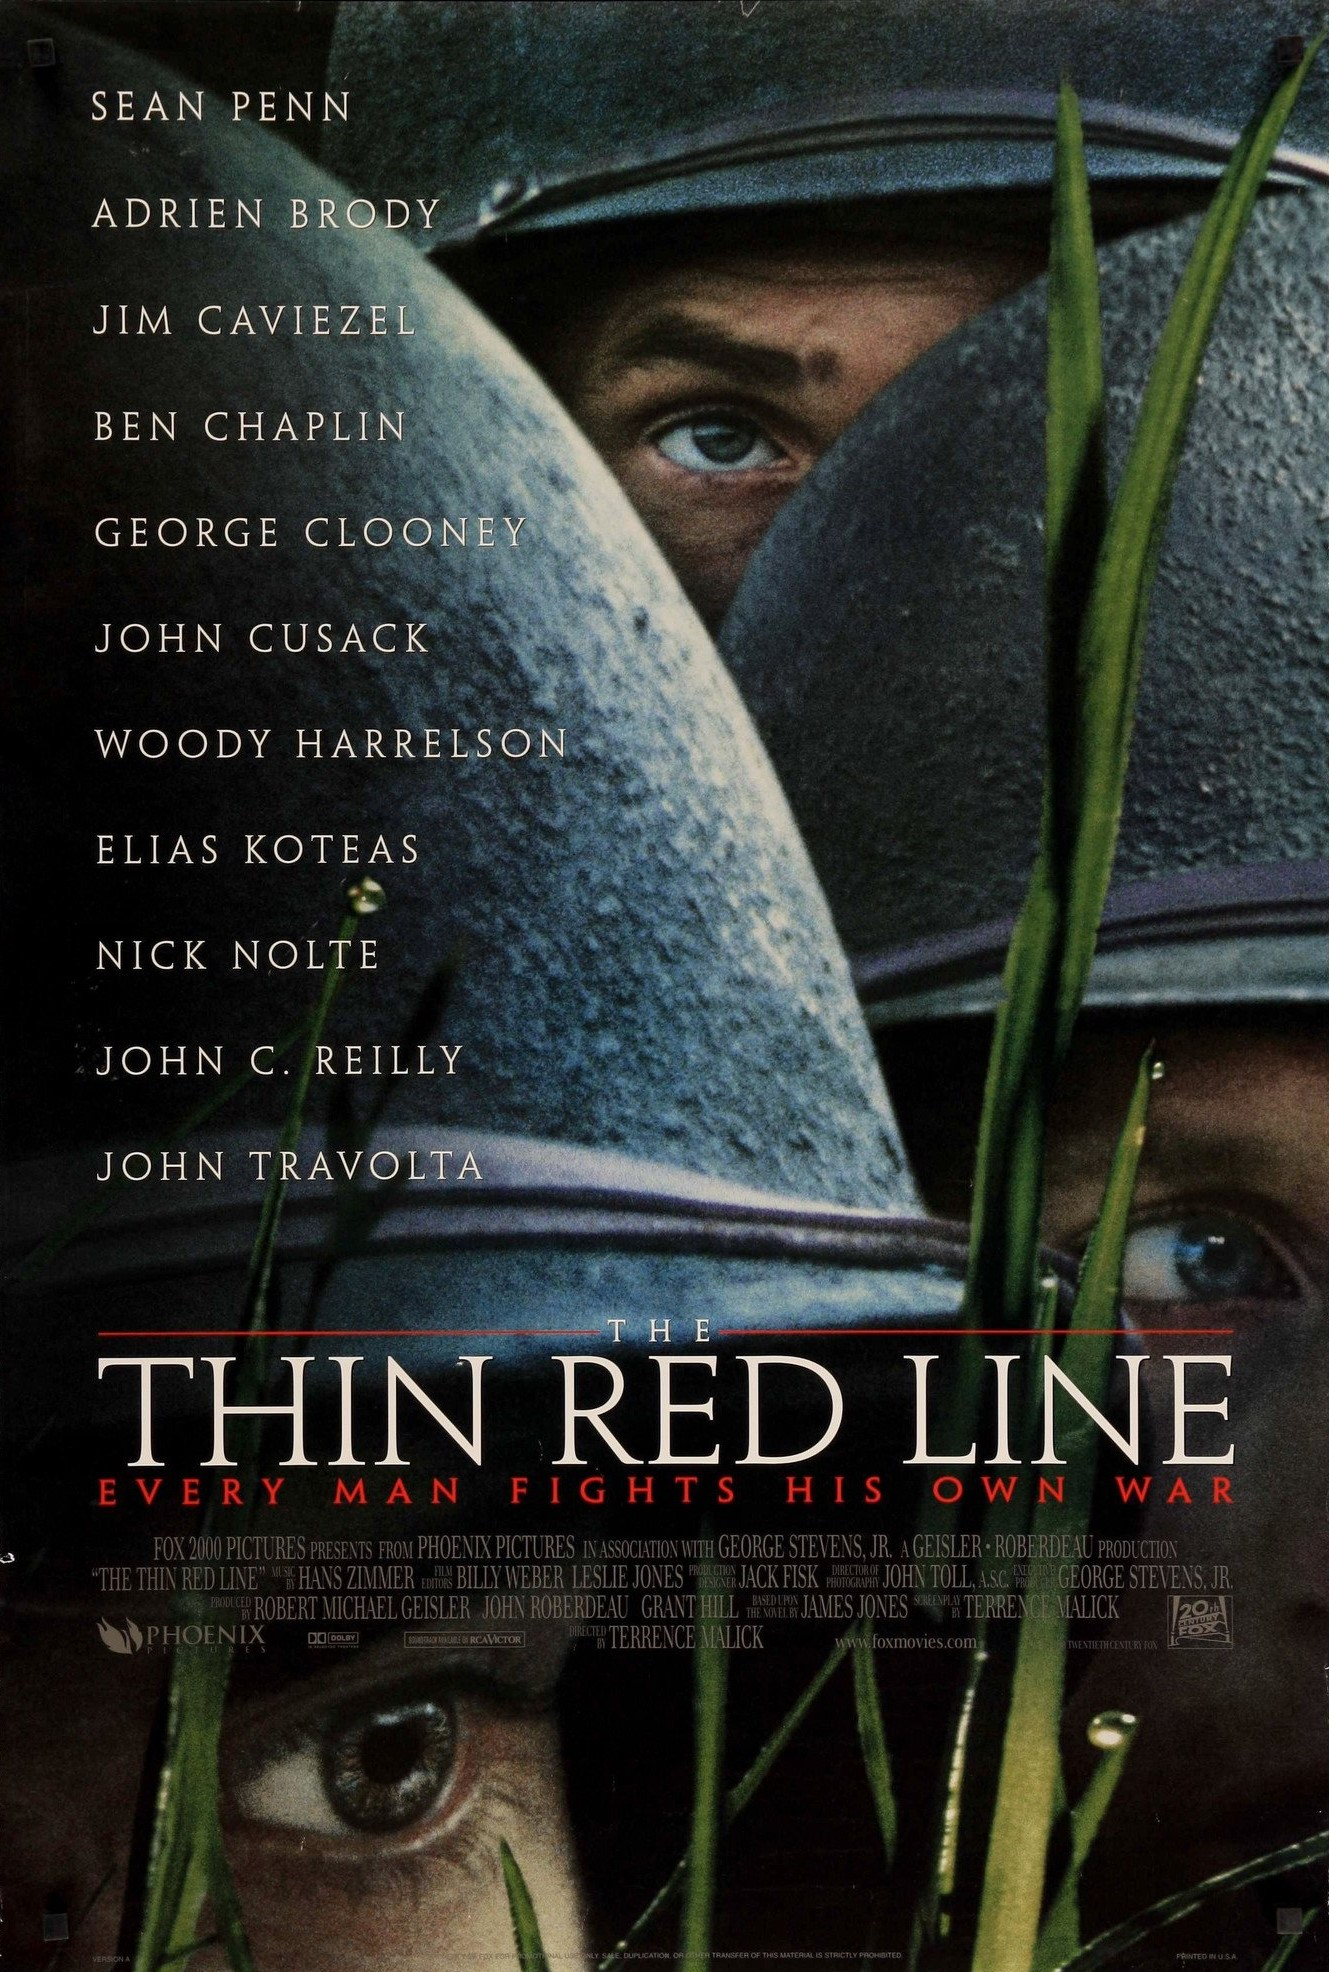 Photo of The Thin Red Line